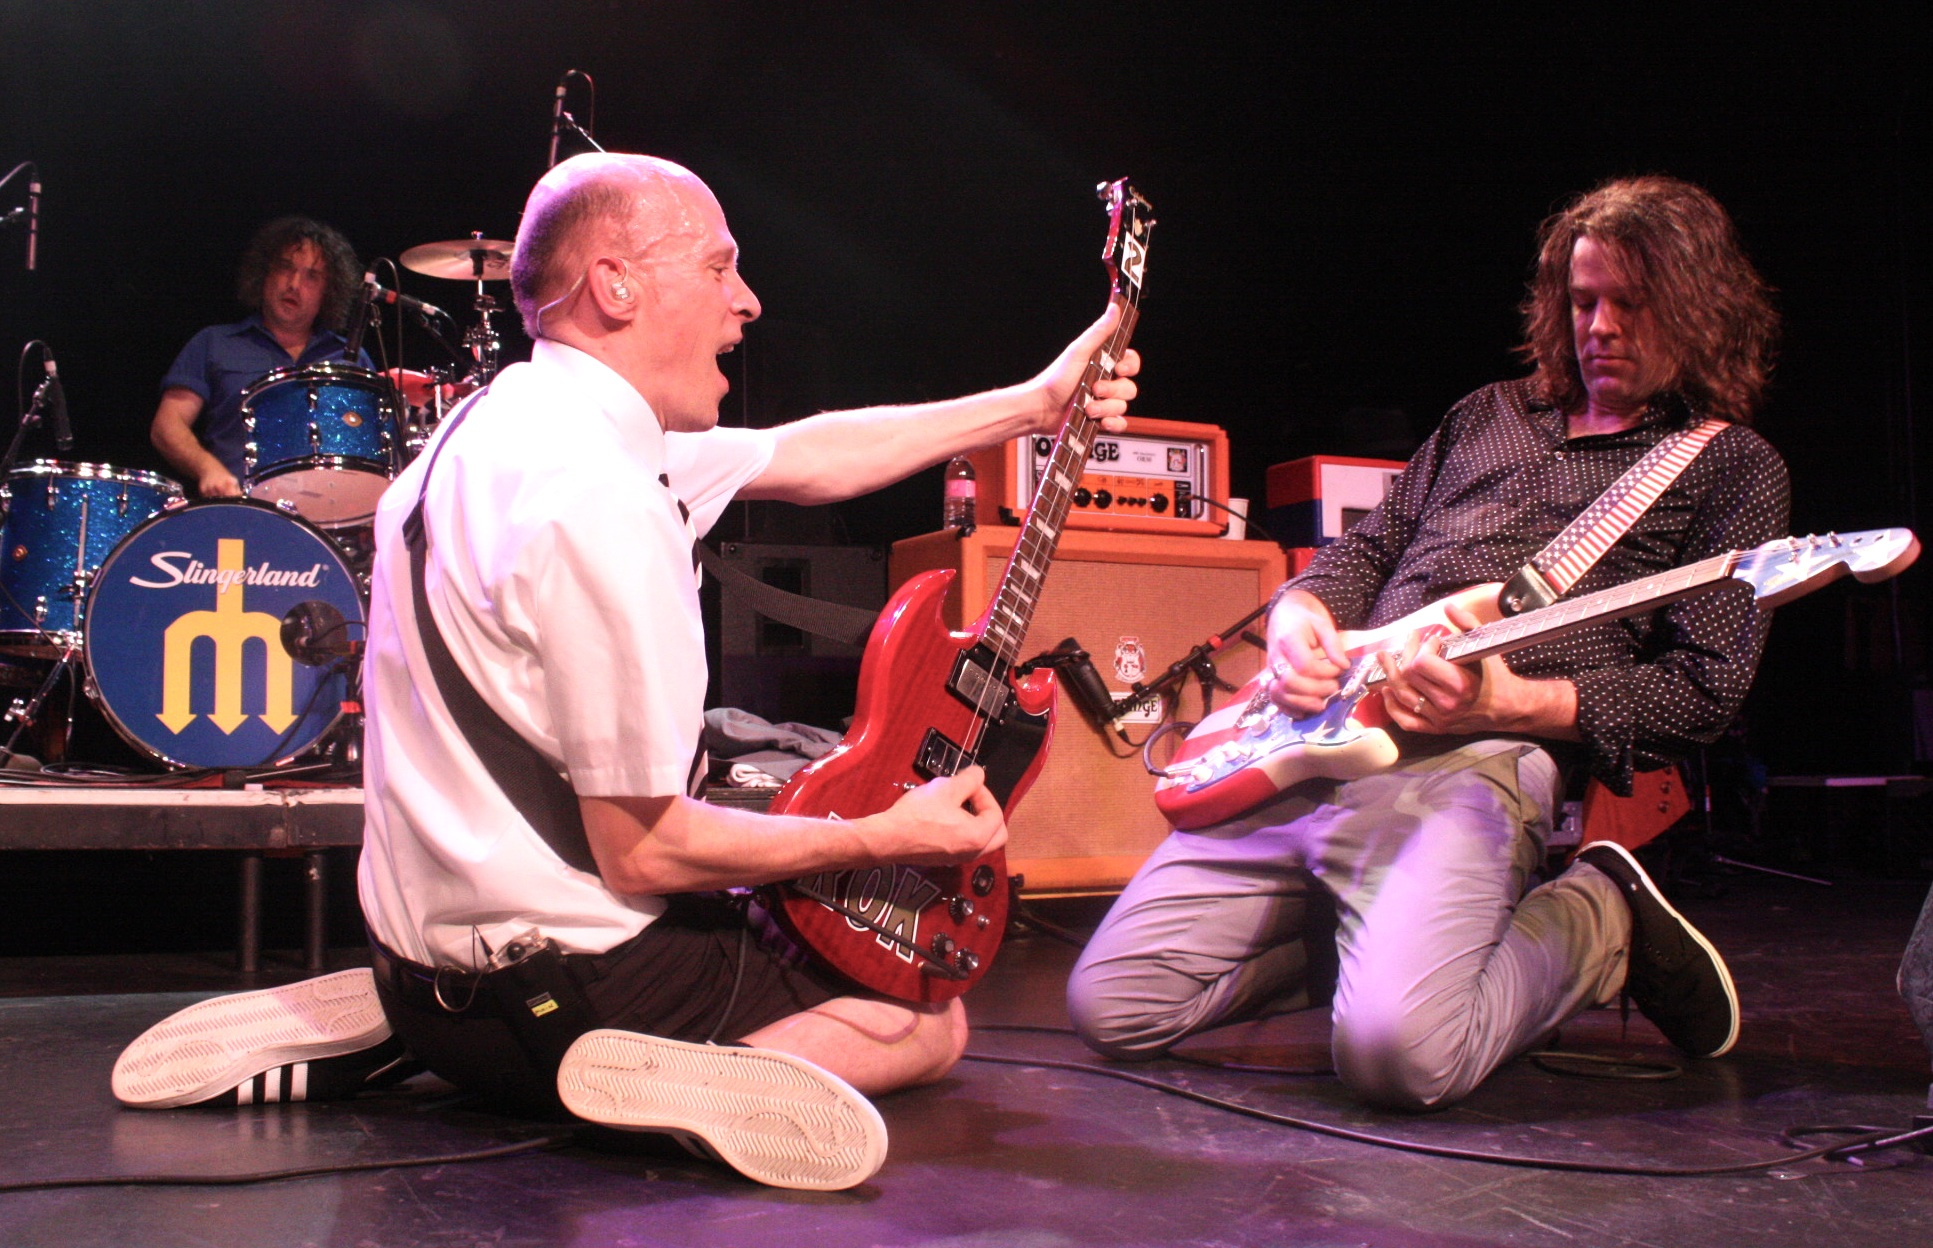 Chris Belew and Andrew McKeag lay it down at The Showbox - Photo: Alina Shanin